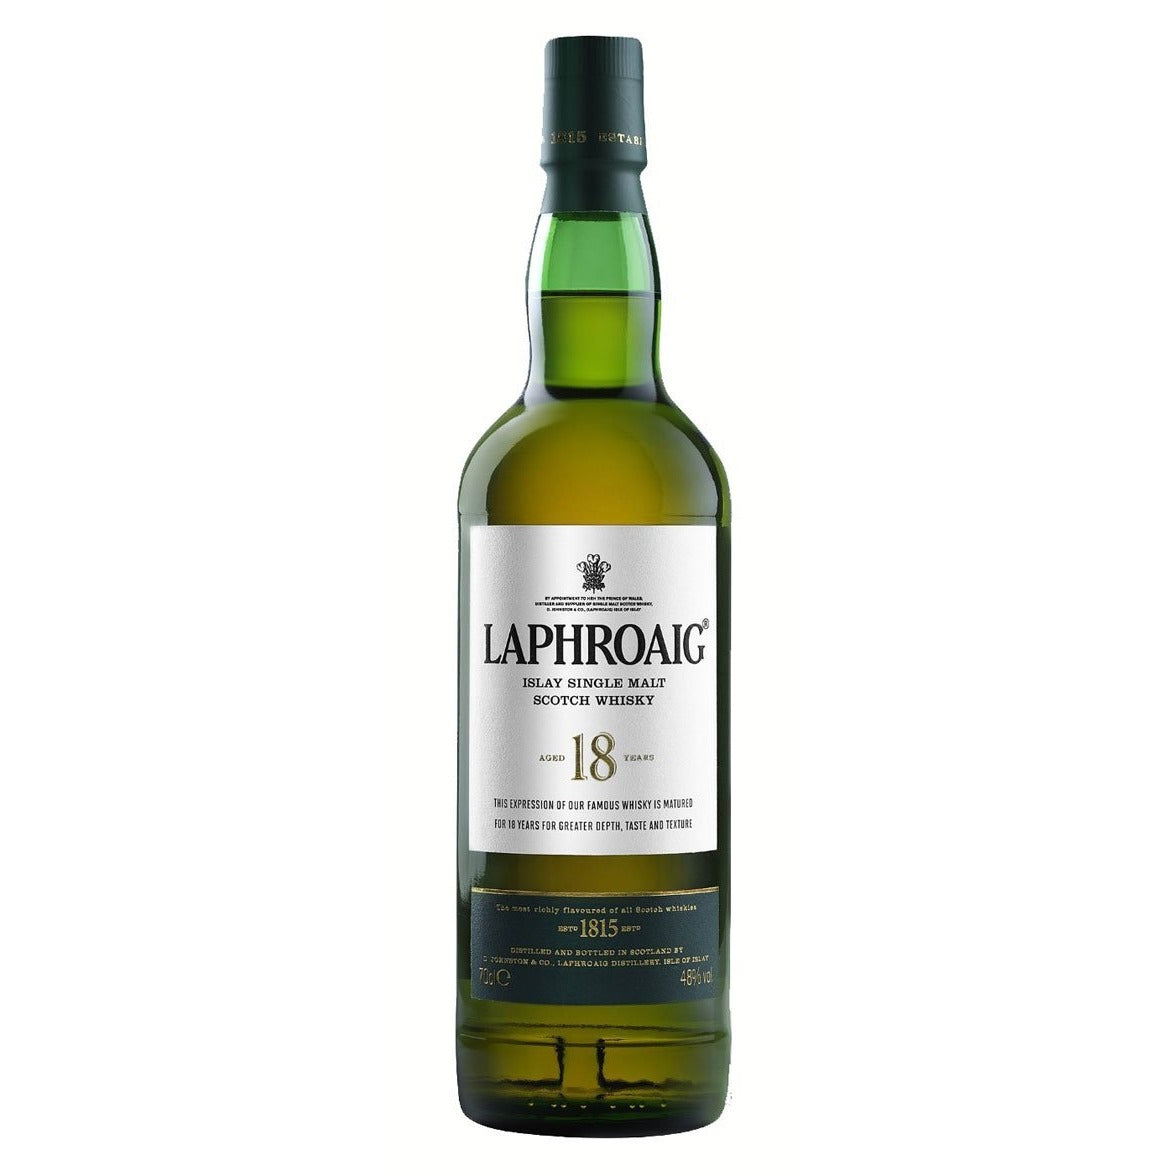 Laphroaig 18 Years (700ml) - easydrinks.co